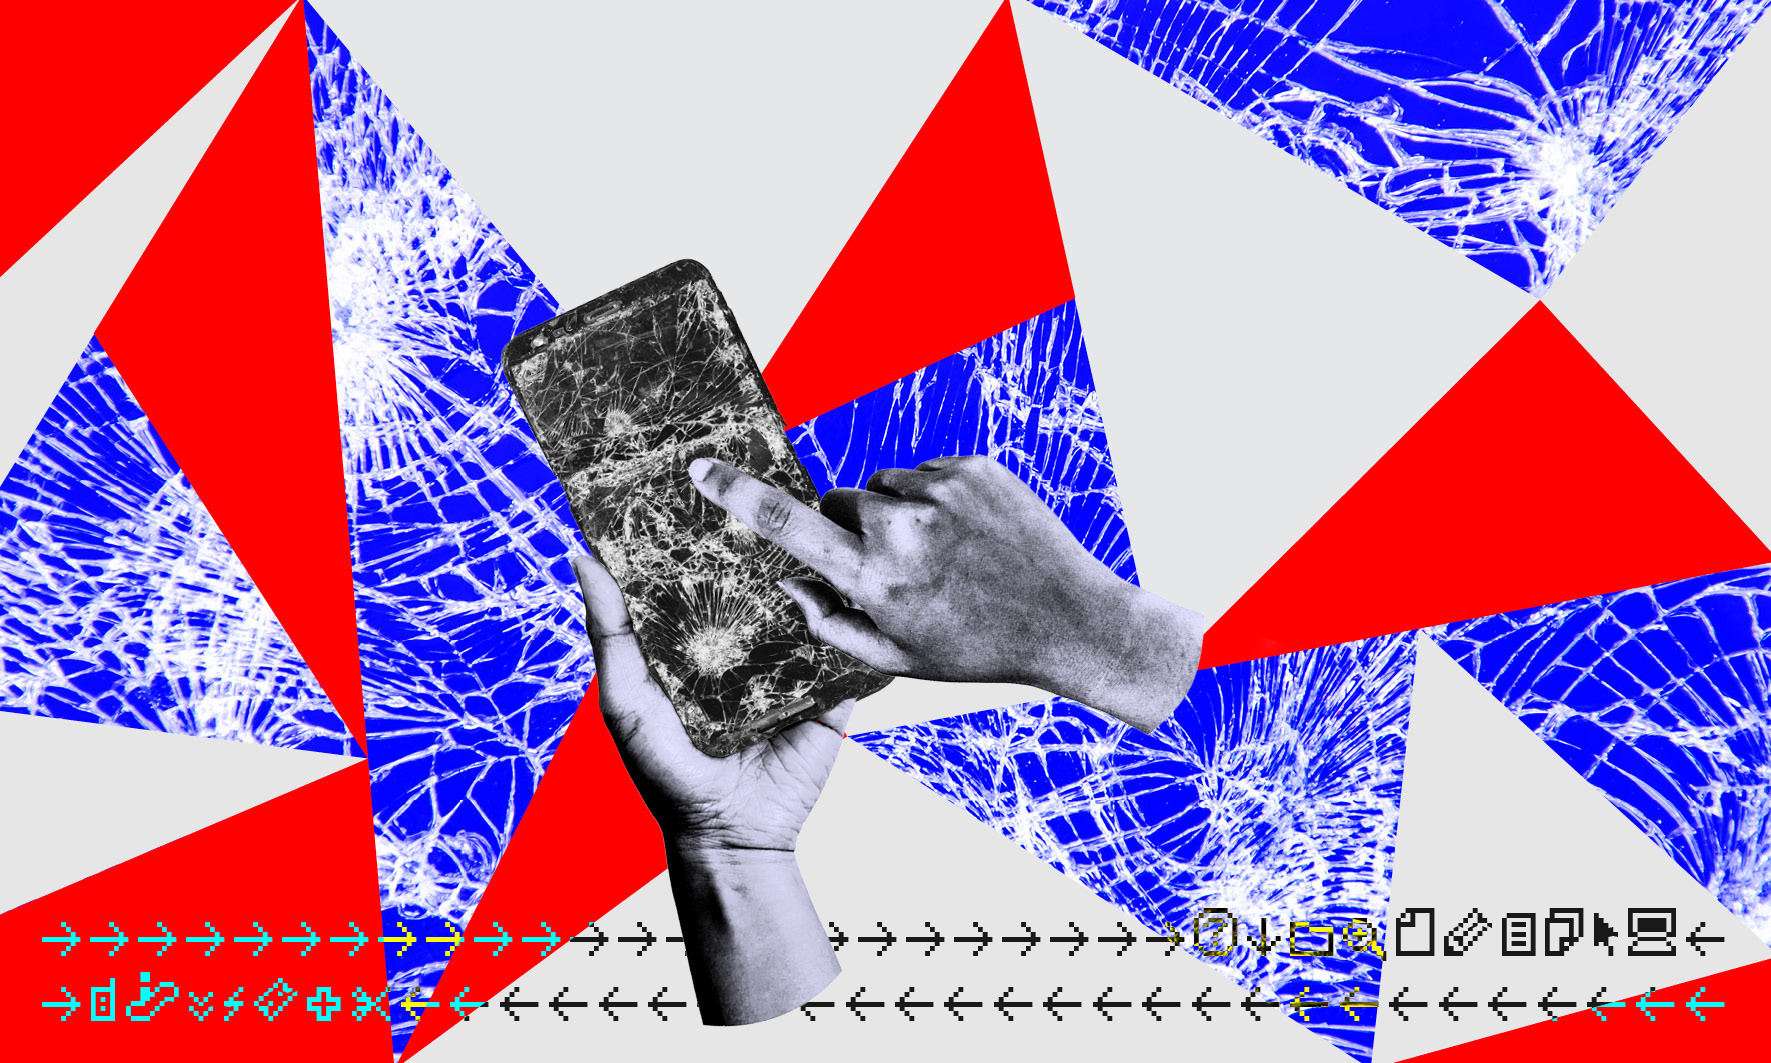 I will never, ever fix my smashed phone screen – and I'm not alone